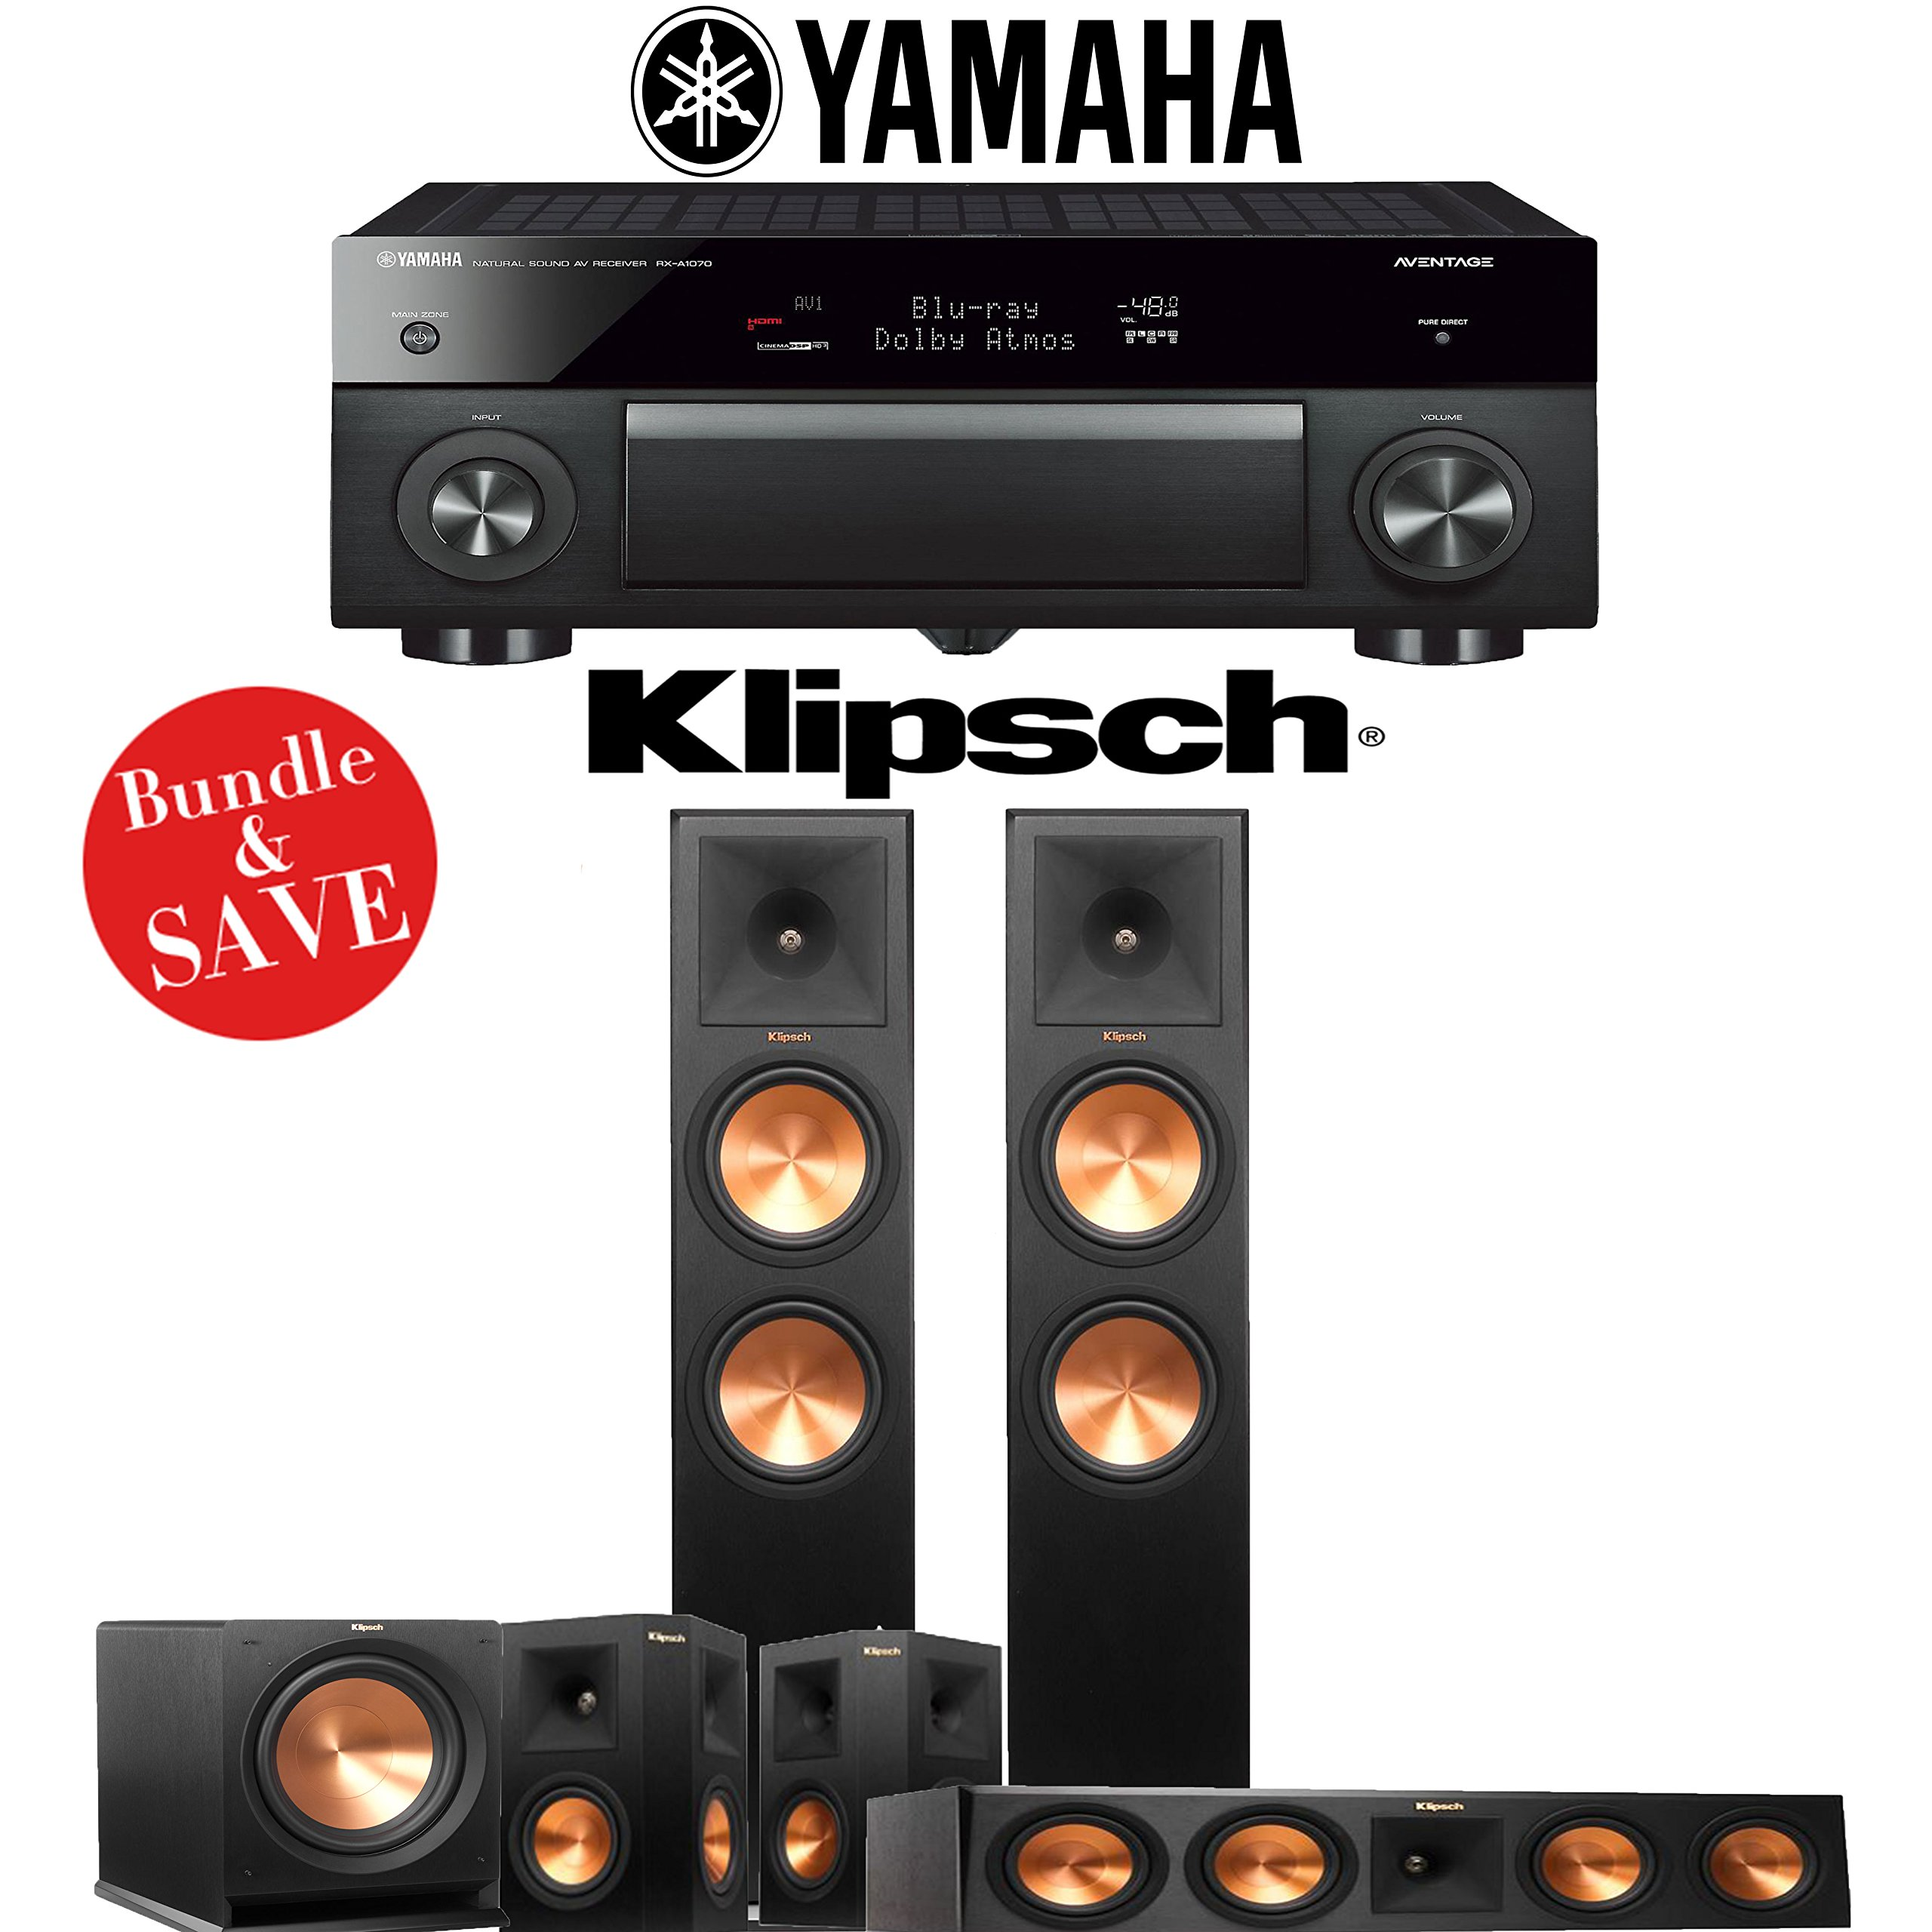 Klipsch RP-280F 5.1 Reference Premiere Home Theater System with Yamaha AVENTAGE RX-A1070BL 7.2-Channel Network AV Receiver by Klipsch